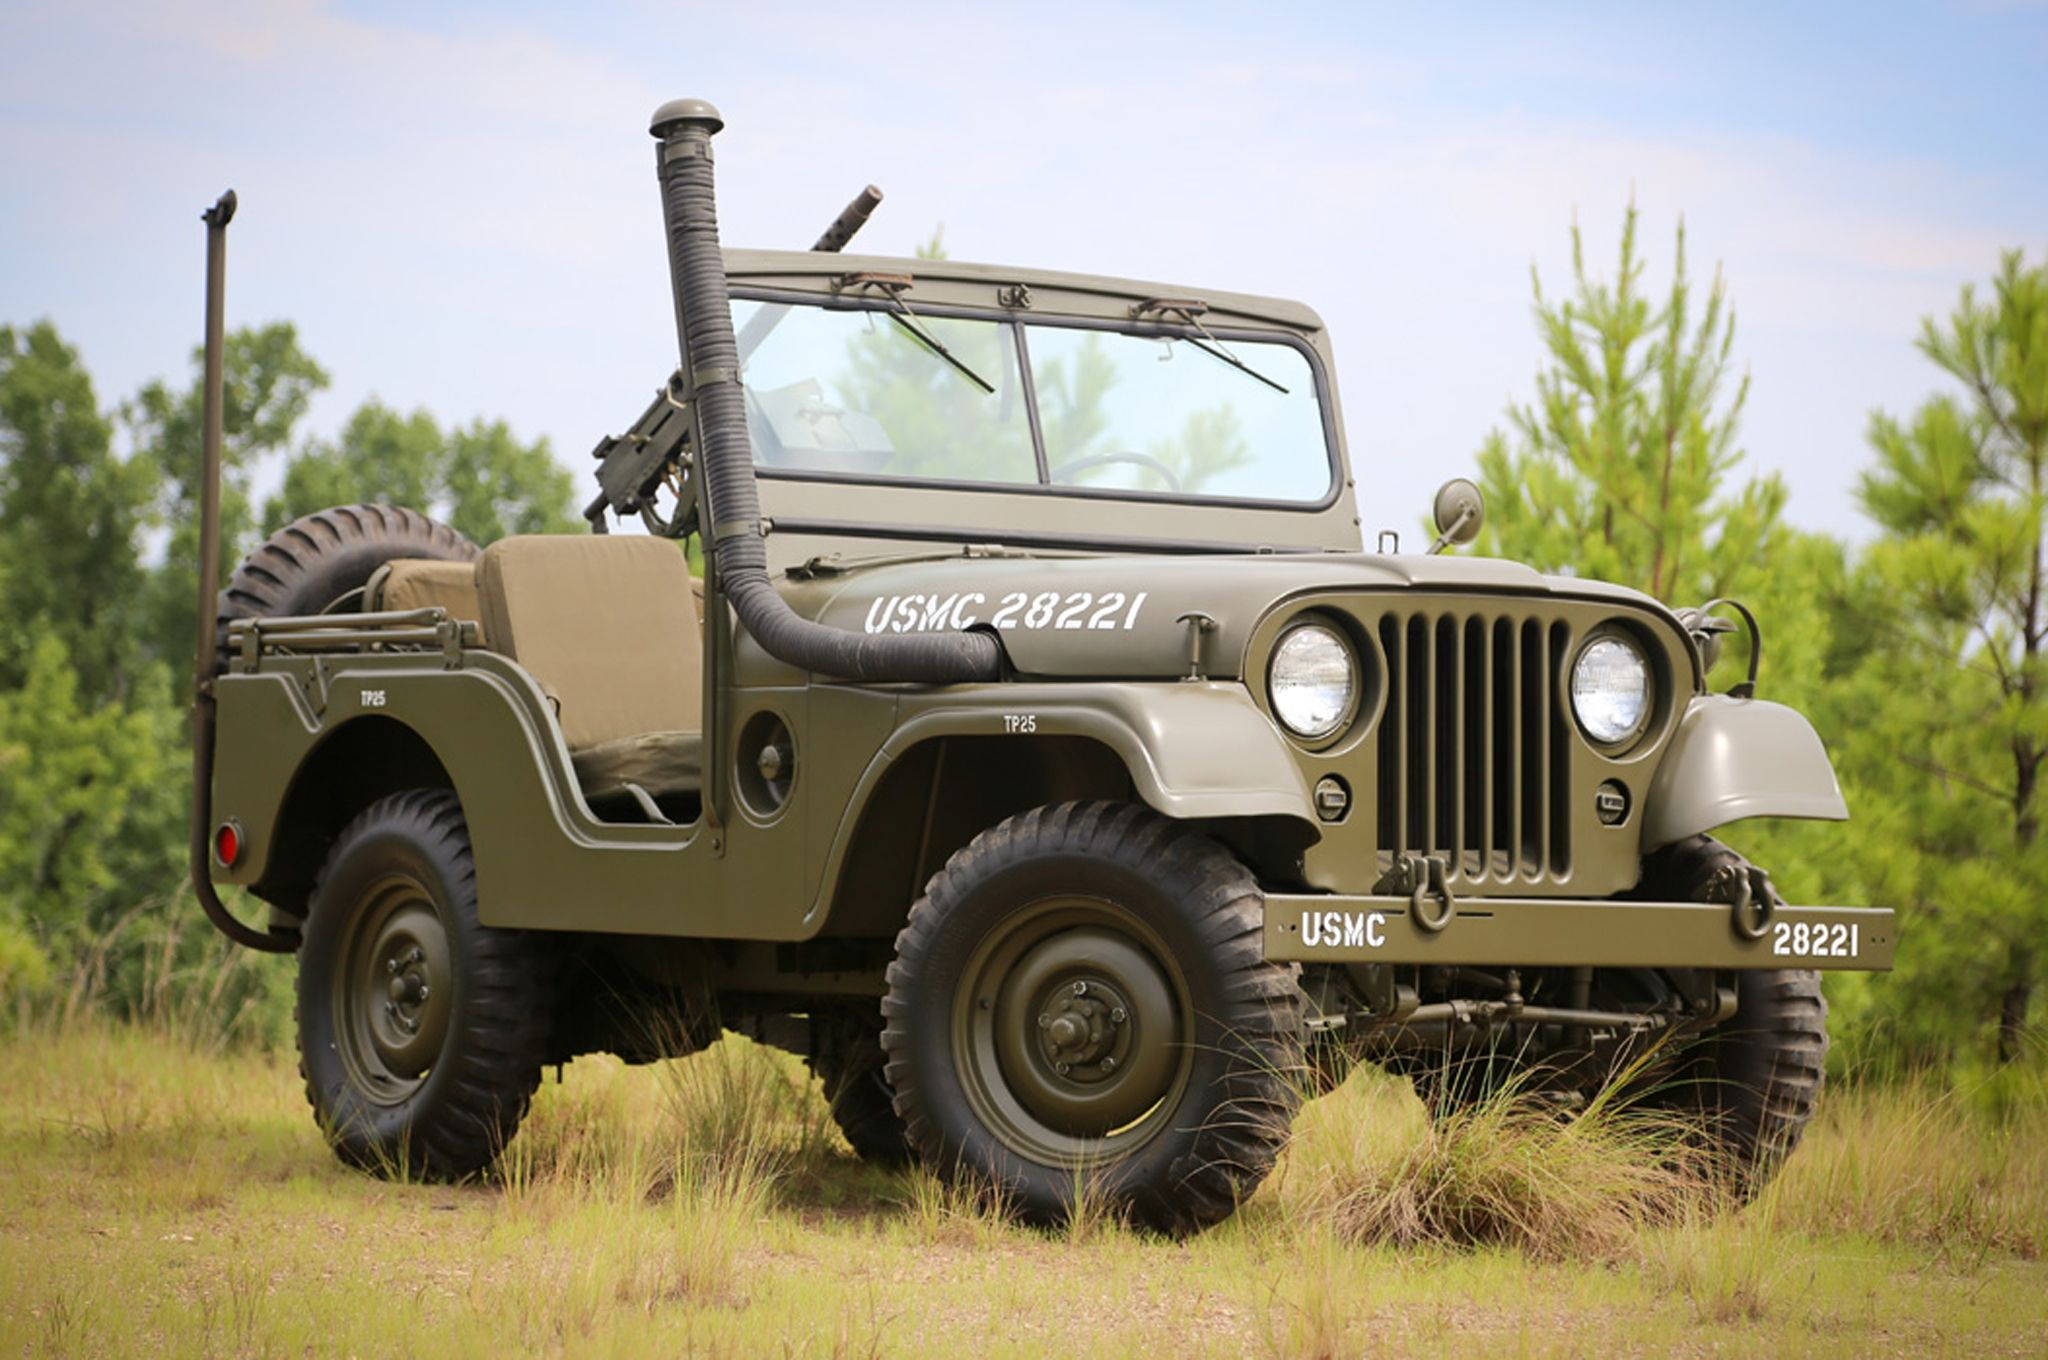 1952 Jeep Willys M38-A1 with snorkel kit.